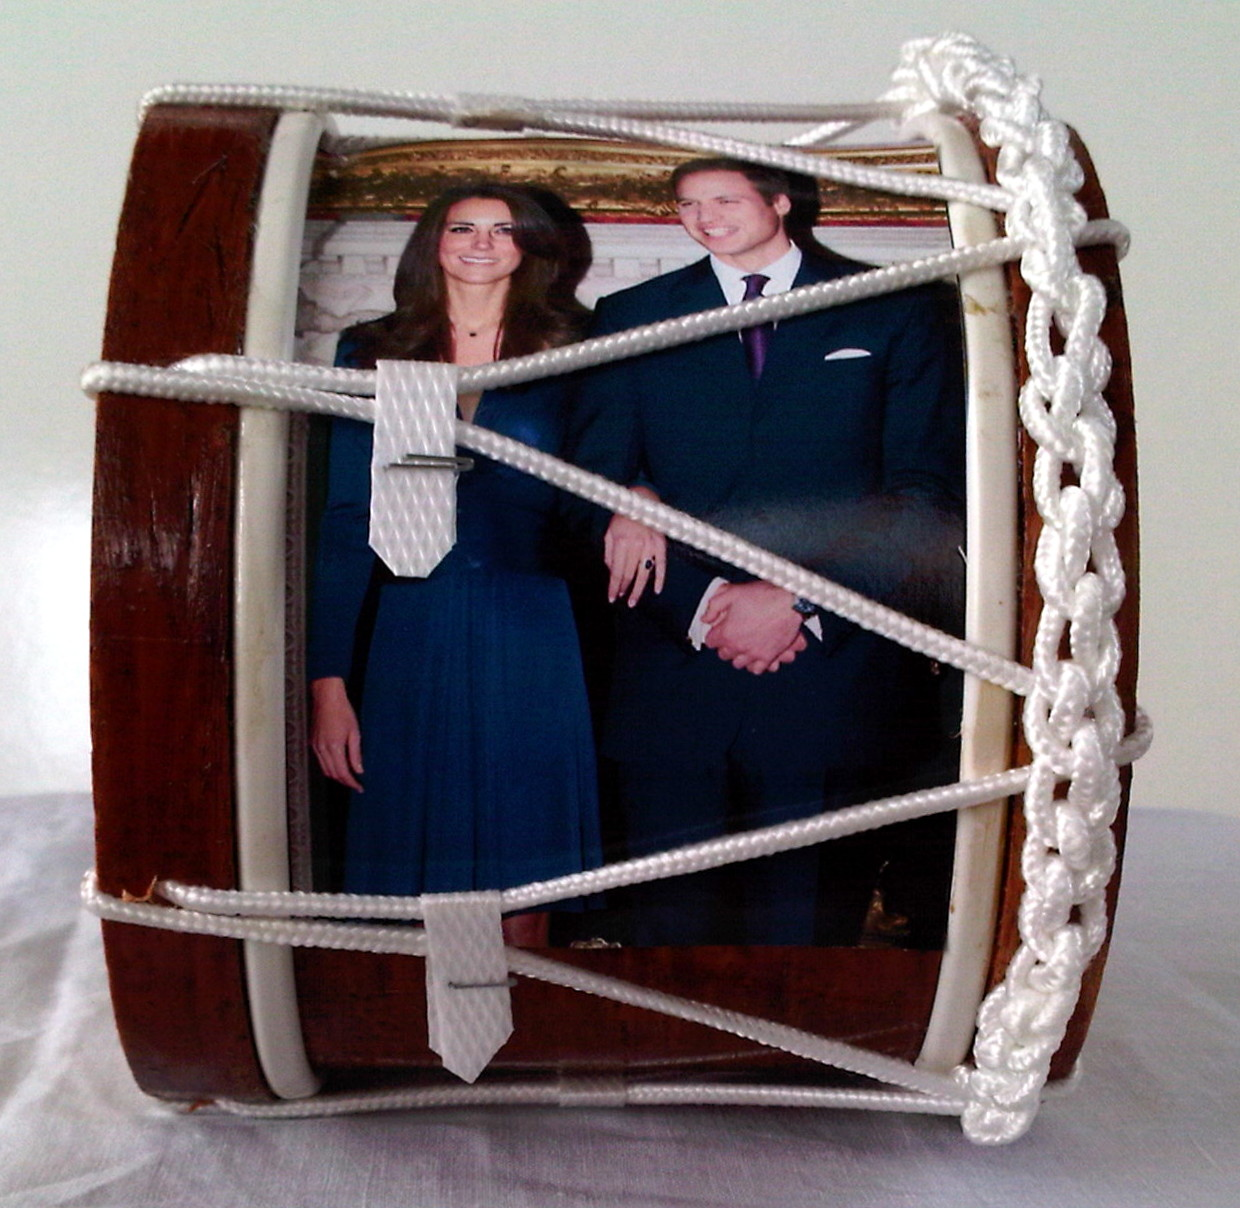 Royal Wedding Souvenir Mini Lambeg Drum ( Formal Image )